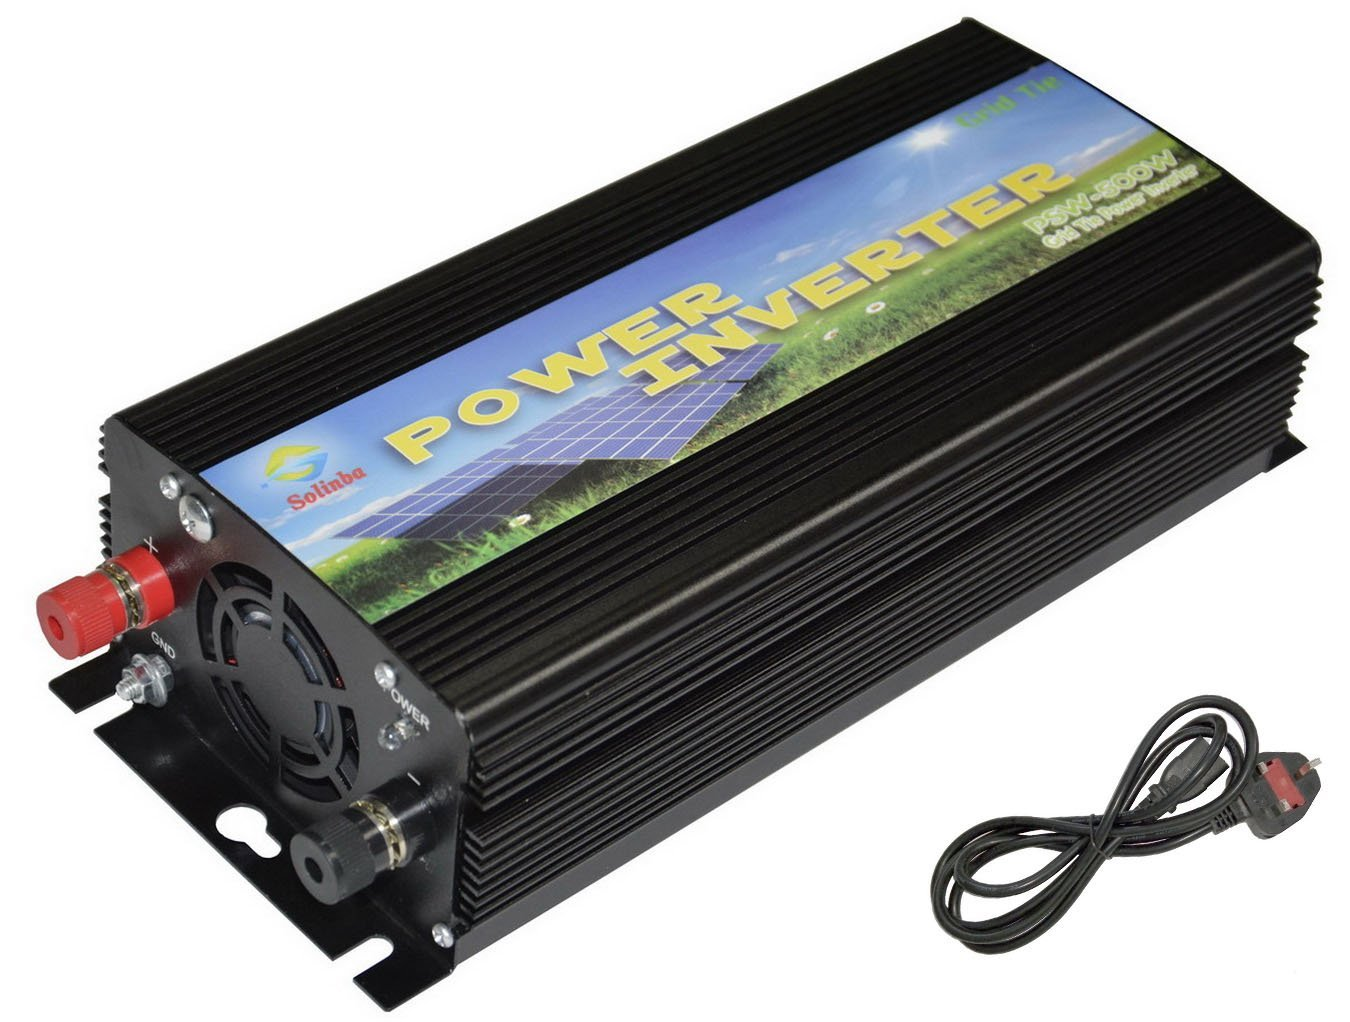 Solinba Grid Tie Power Inverter 500w, Converter, MPPT, for Solar Panel, Black, UK, DC11v-28v to AC 220v